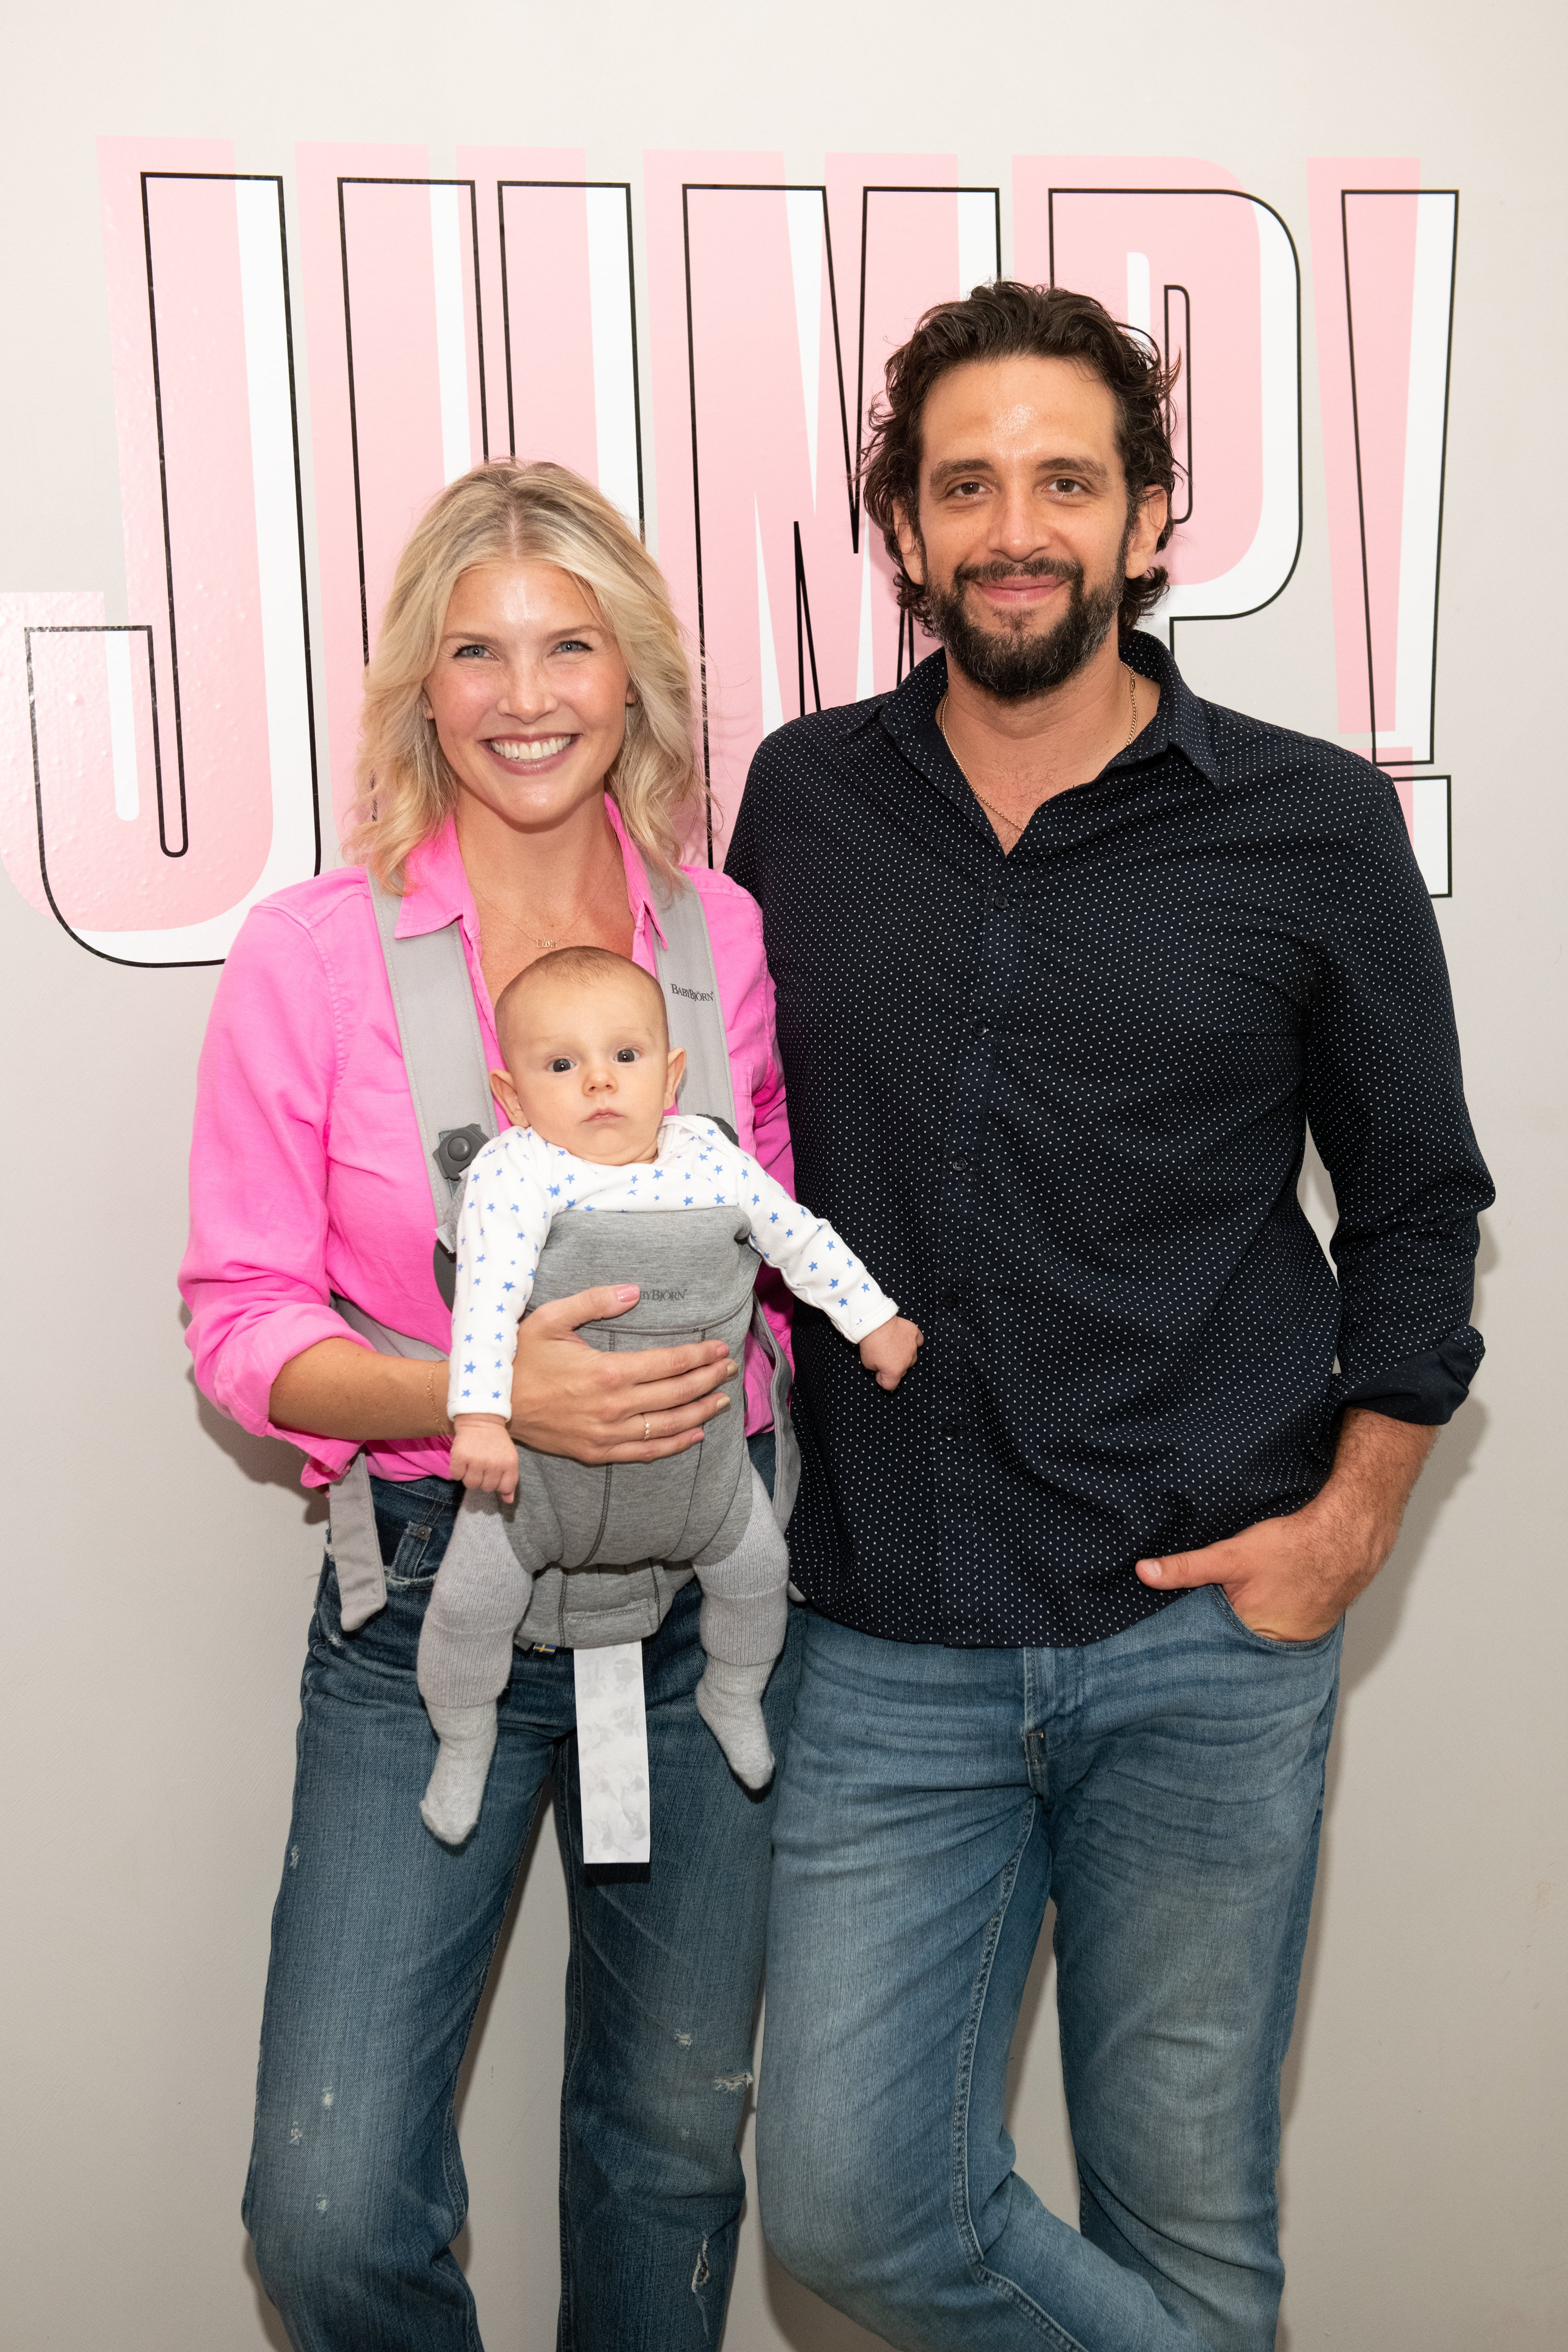 Amanda Kloots, Nick Cordero and their son, Elvis at an event in New York in August 2019. | Photo: Getty Images.